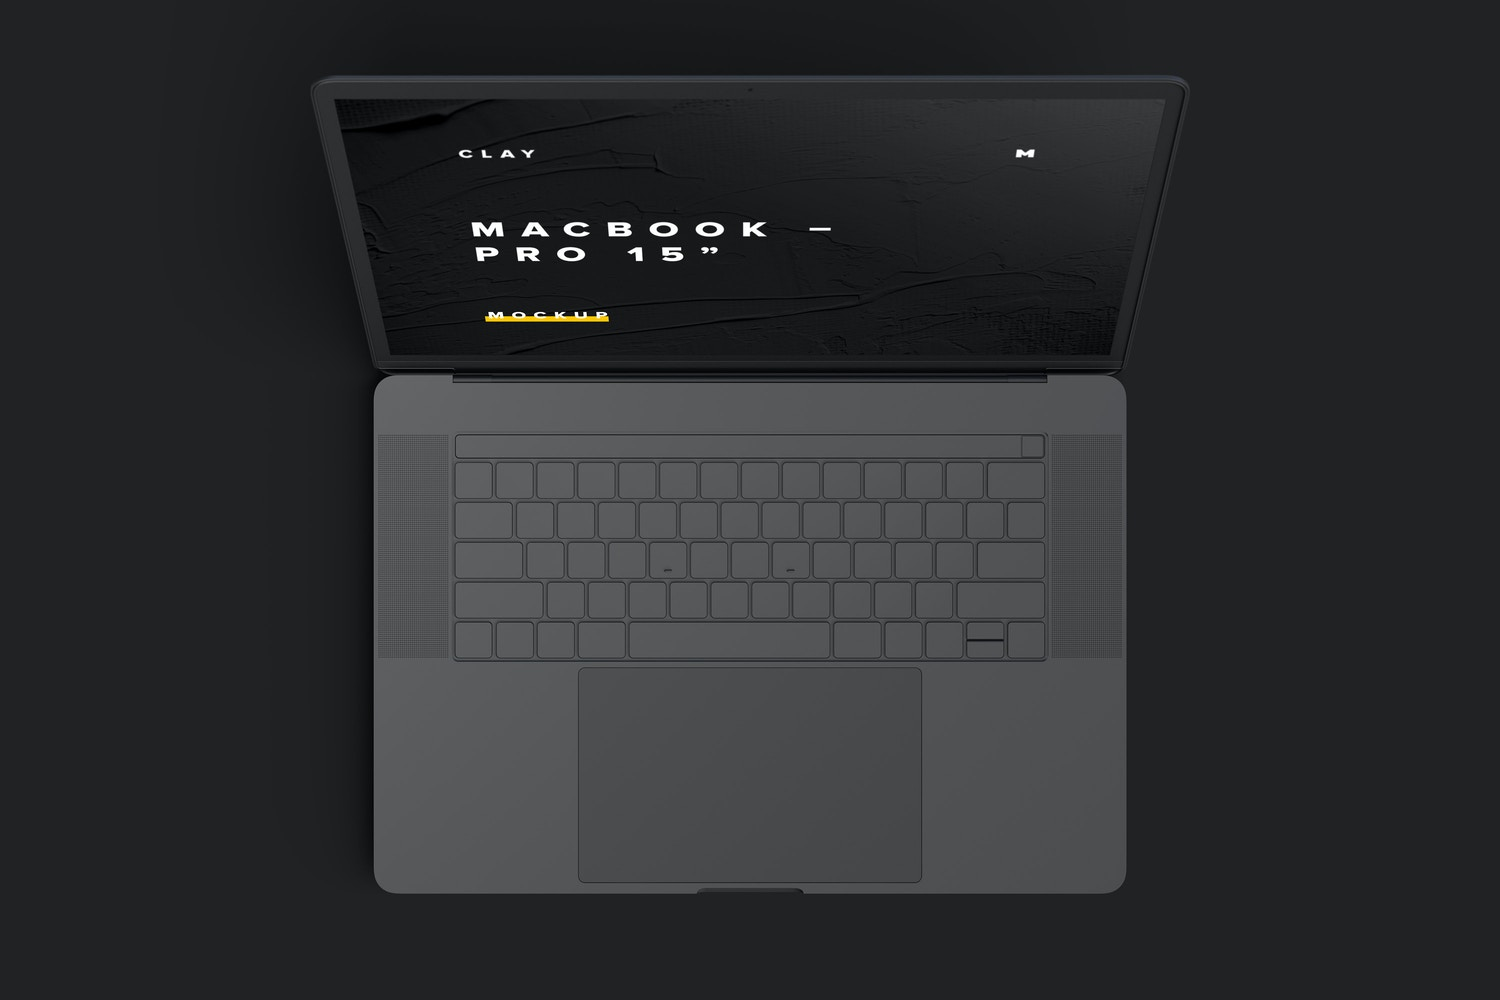 """Clay MacBook Pro 15"""" with Touch Bar, Top View Mockup (6) by Original Mockups on Original Mockups"""